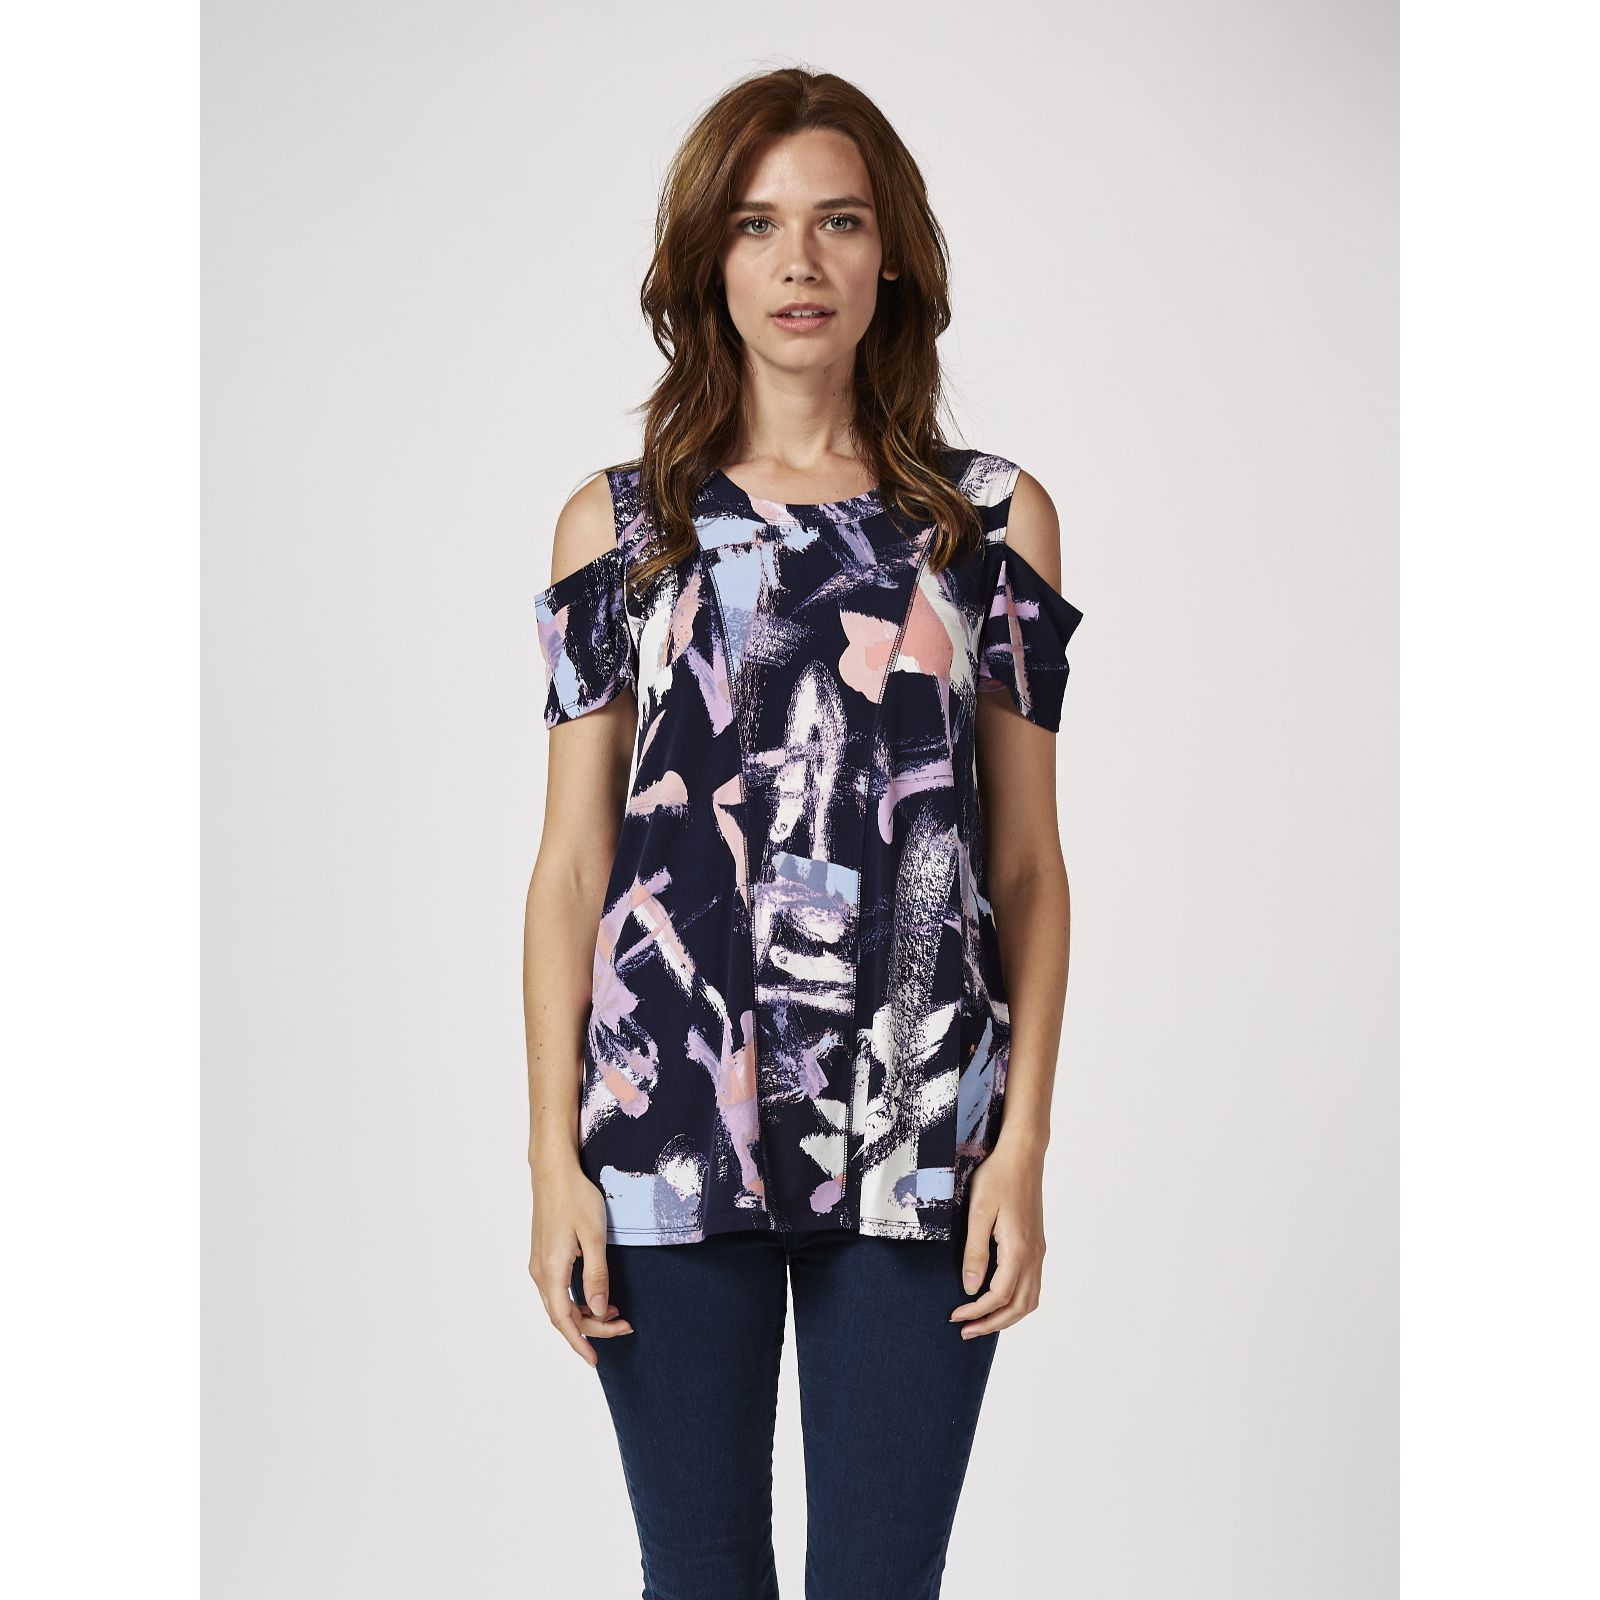 75280a3a332f76 Printed Cold Shoulder Tunic with Flutter Sleeves by Nina Leonard - QVC UK